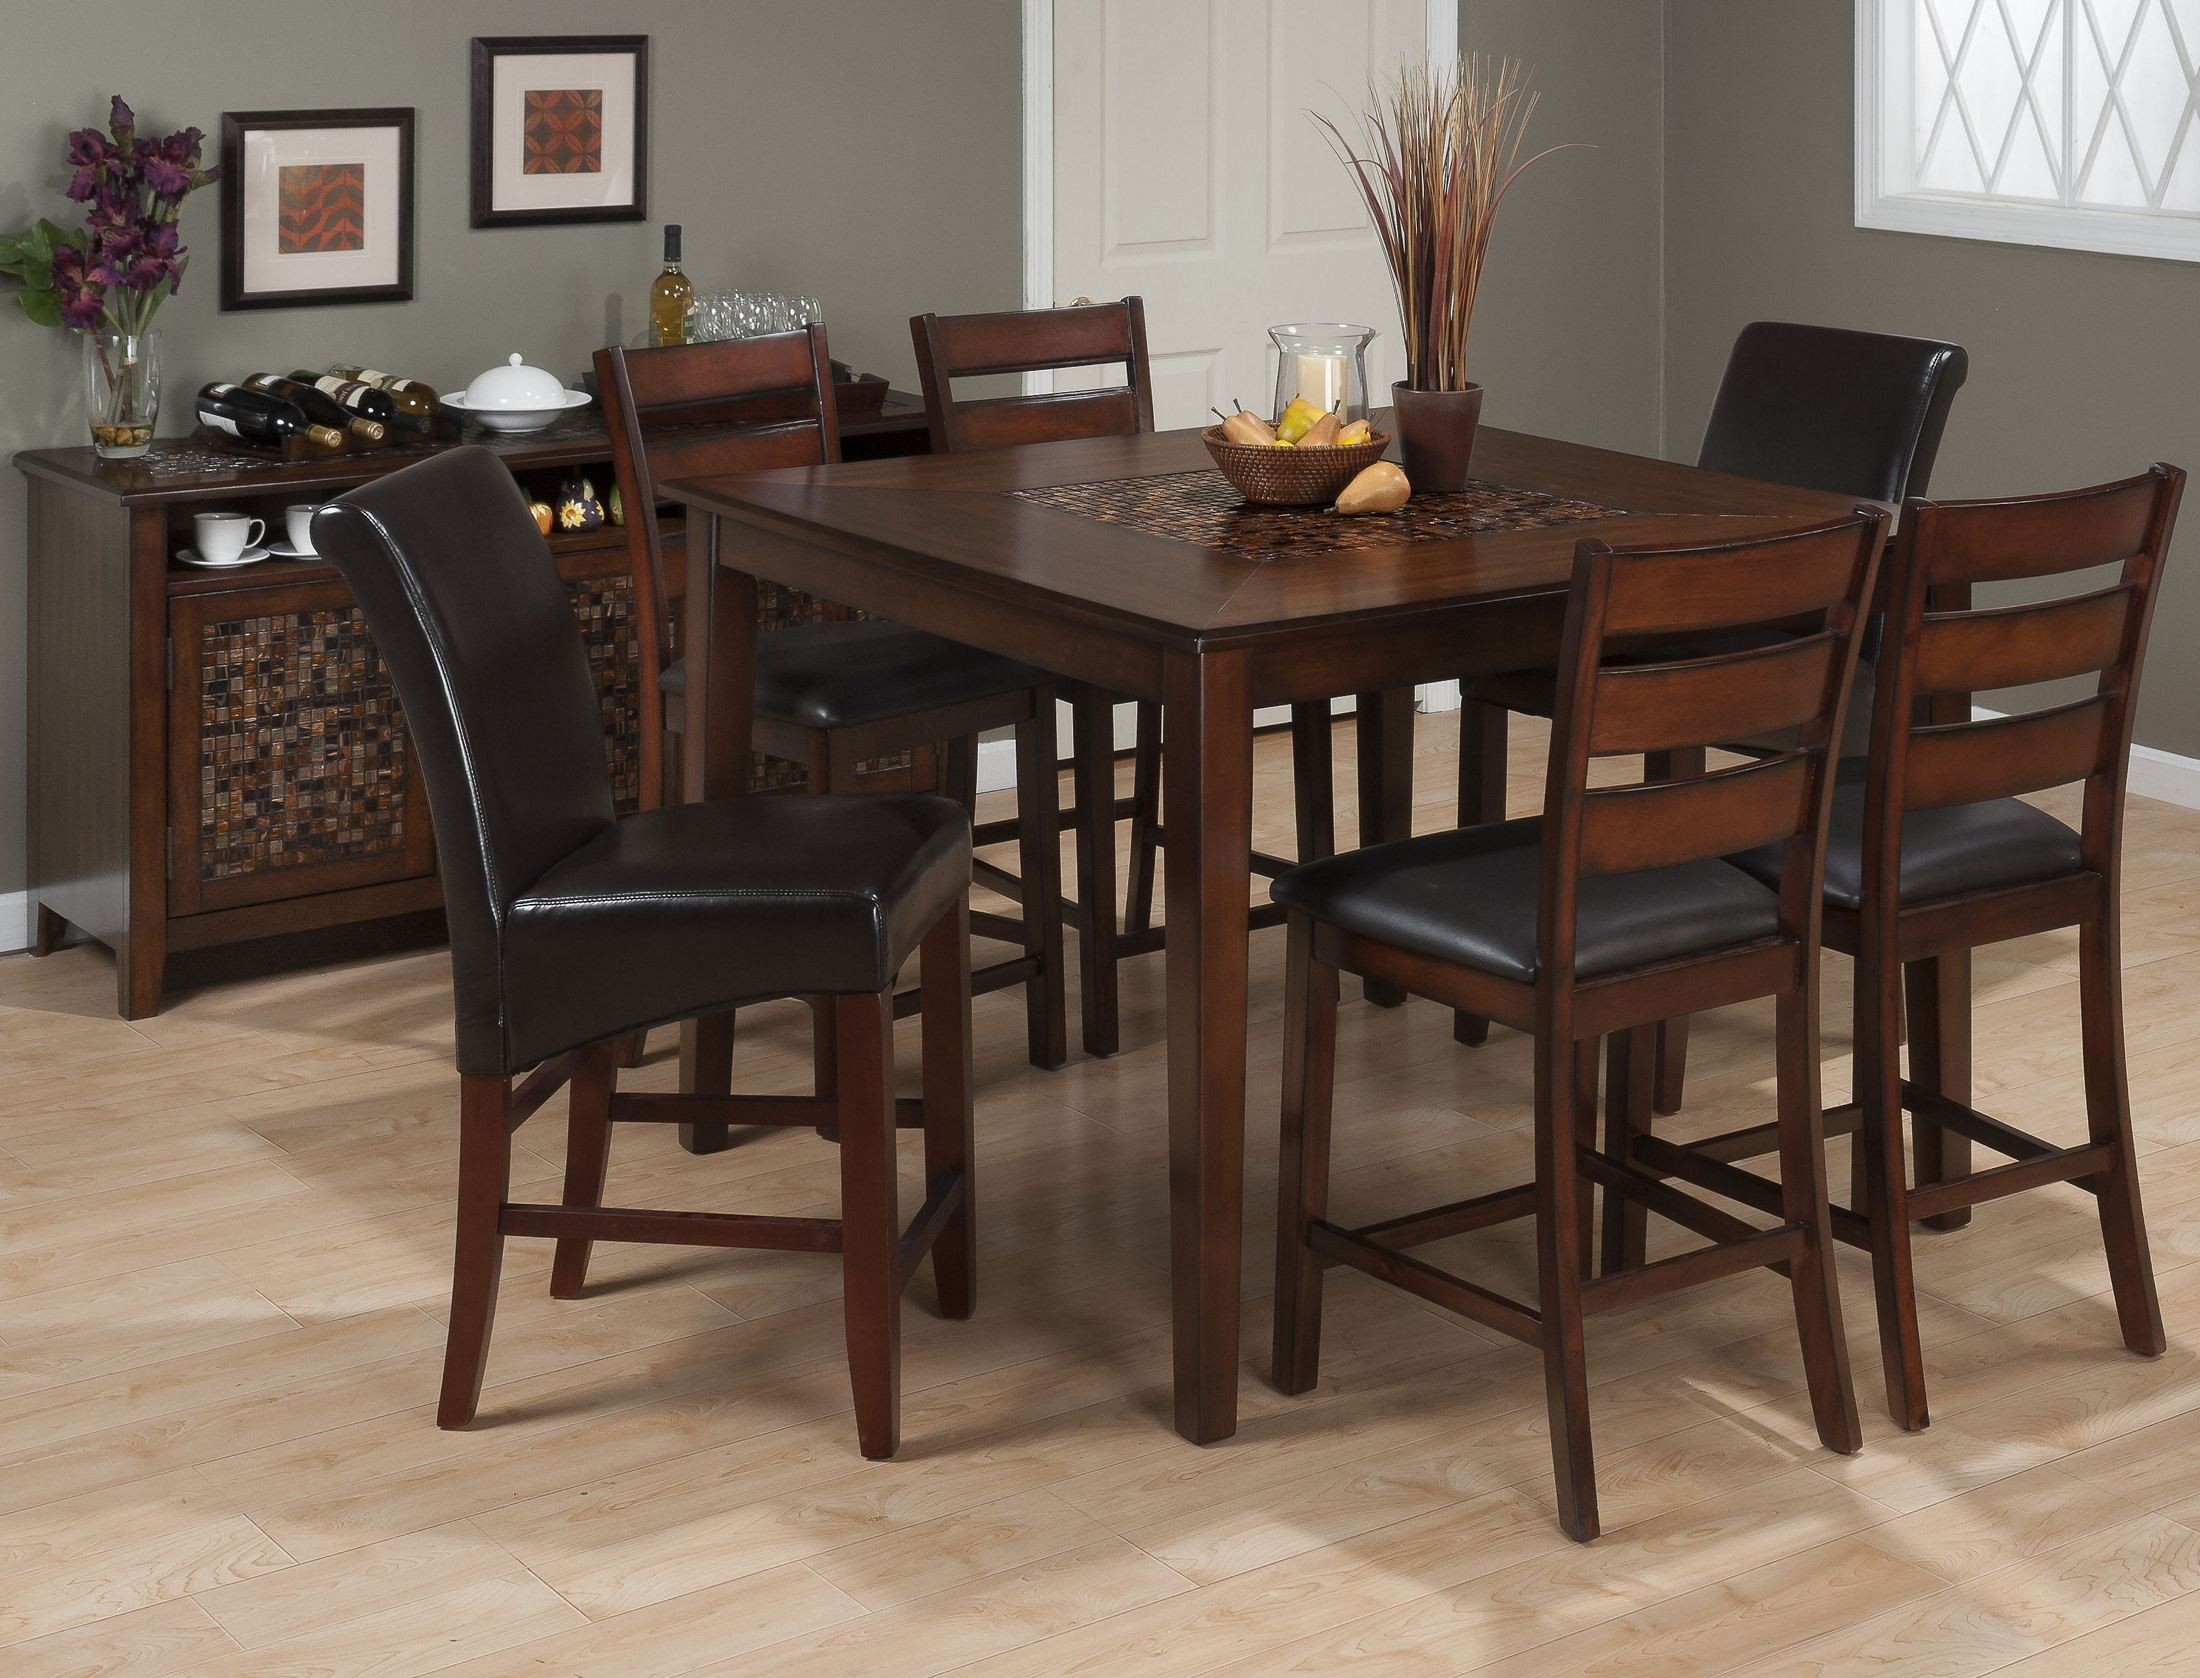 Baroque brown mosaic inlay counter height dining room set for Baroque dining table set